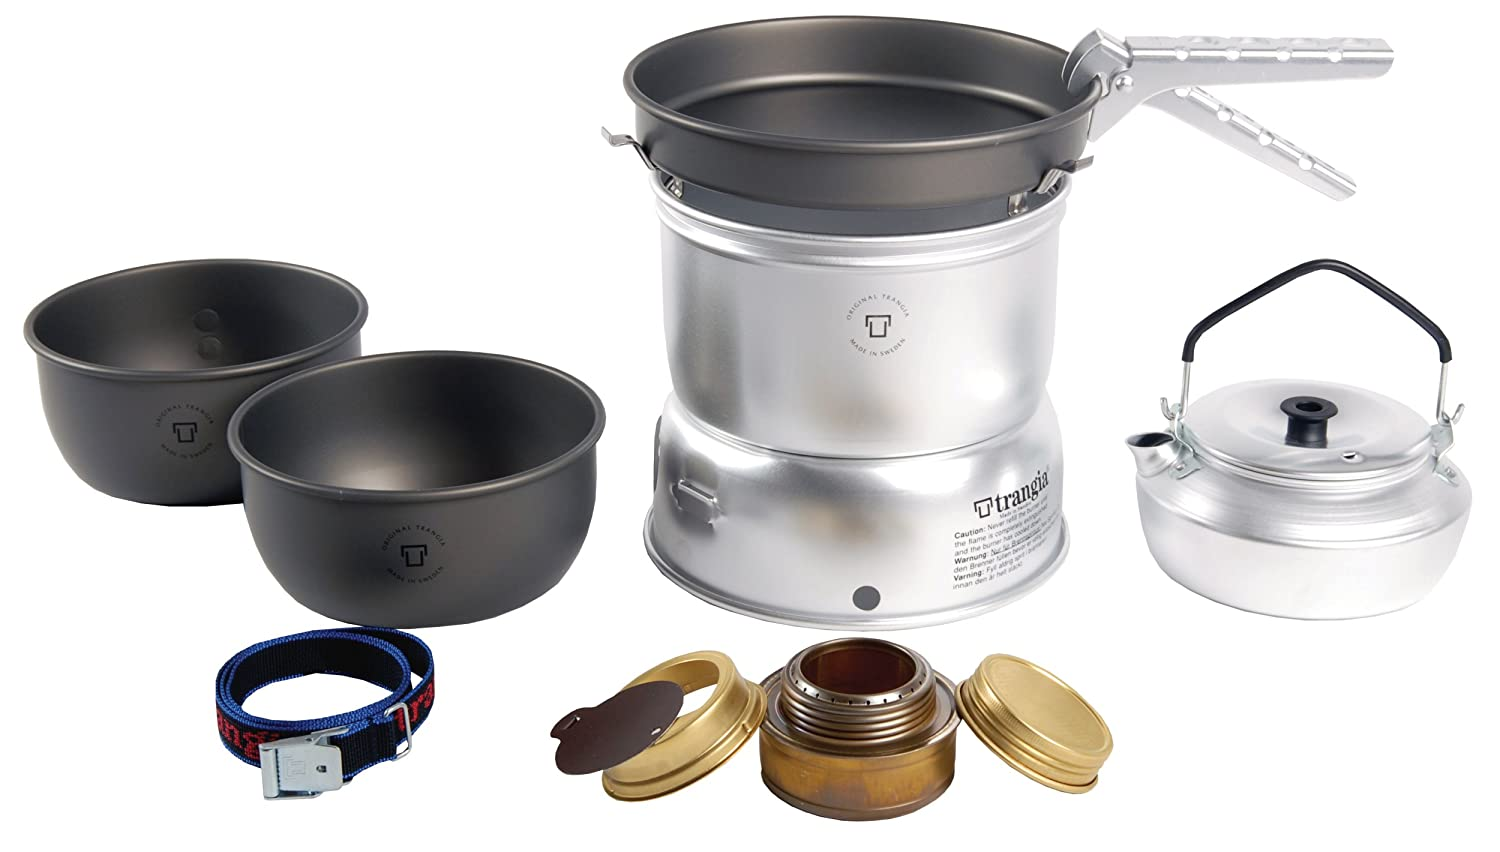 Trangia 27-8 Ultralight Hard Anodized Stove Kit